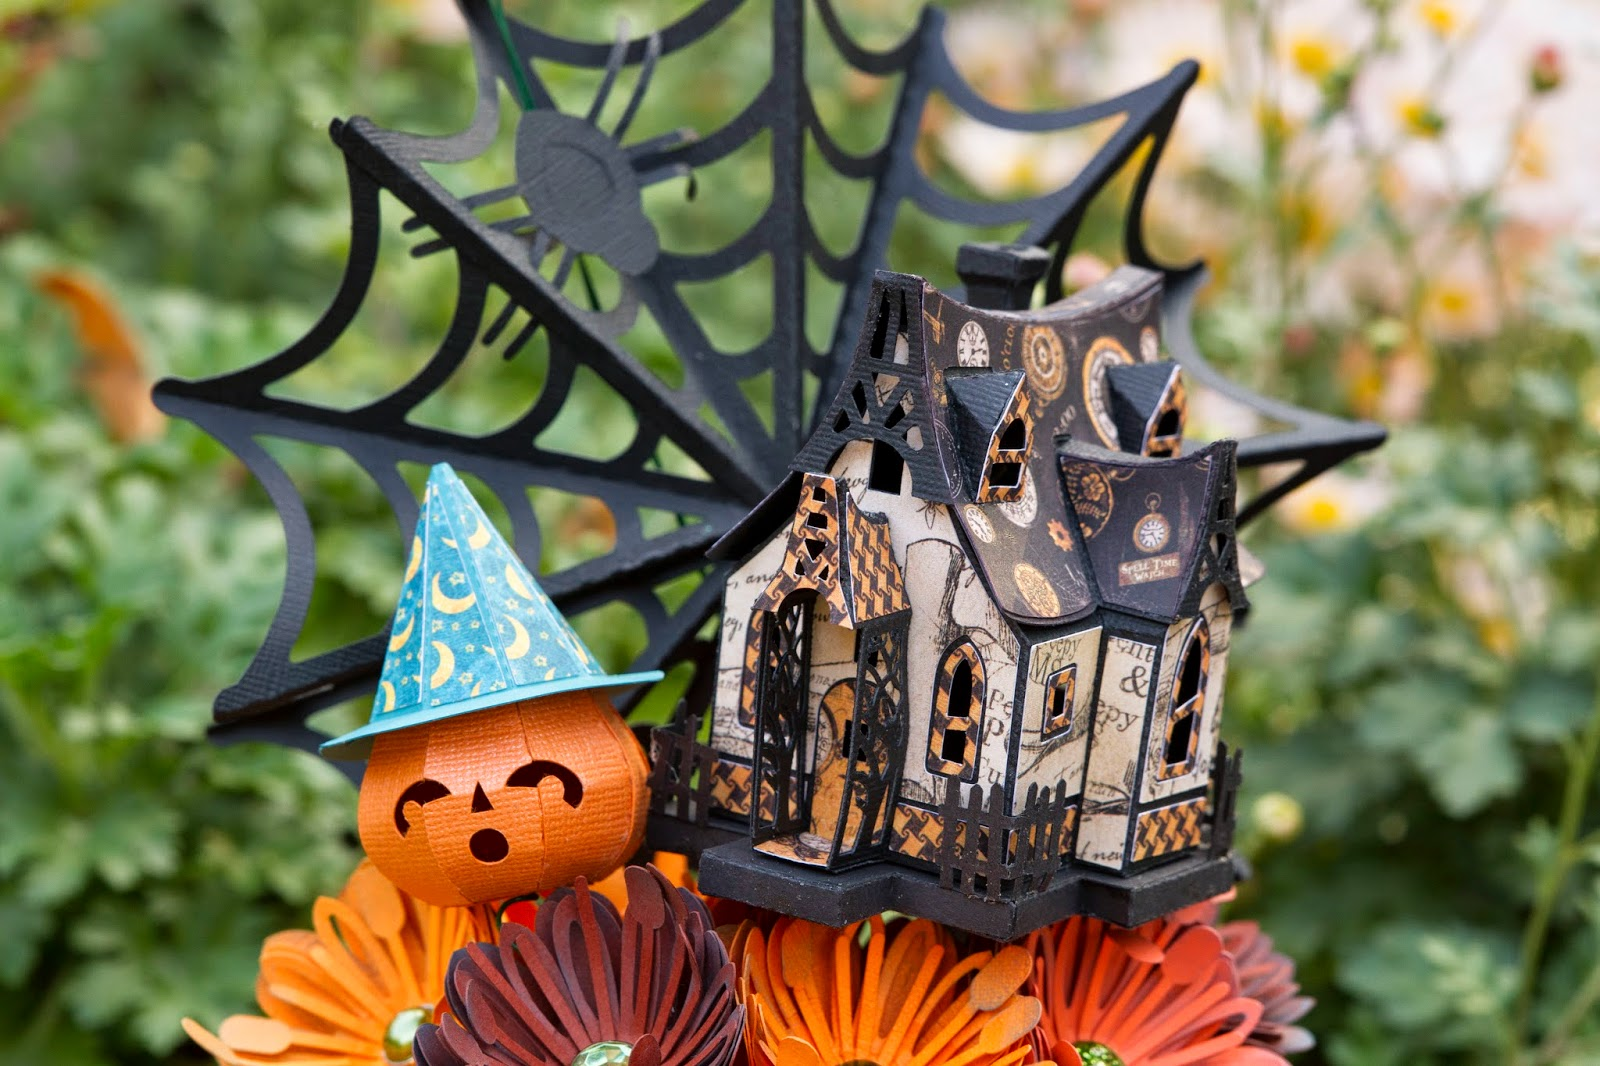 Close up of pumpkin, witches house and spiderweb